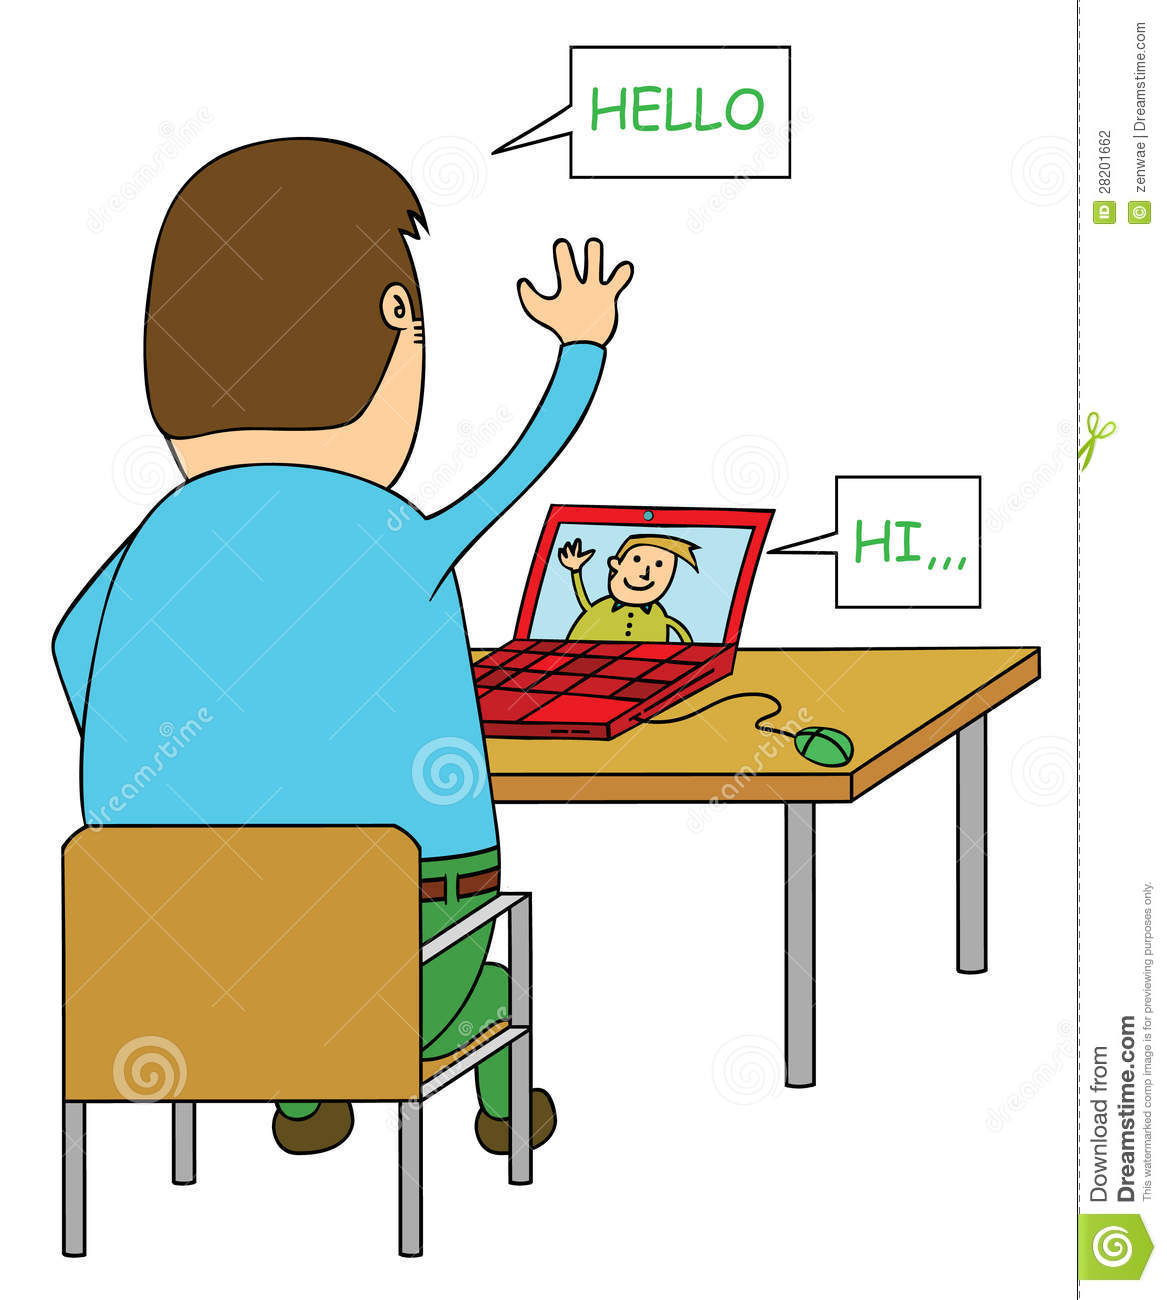 ... online chat clip art gallery video chat ...